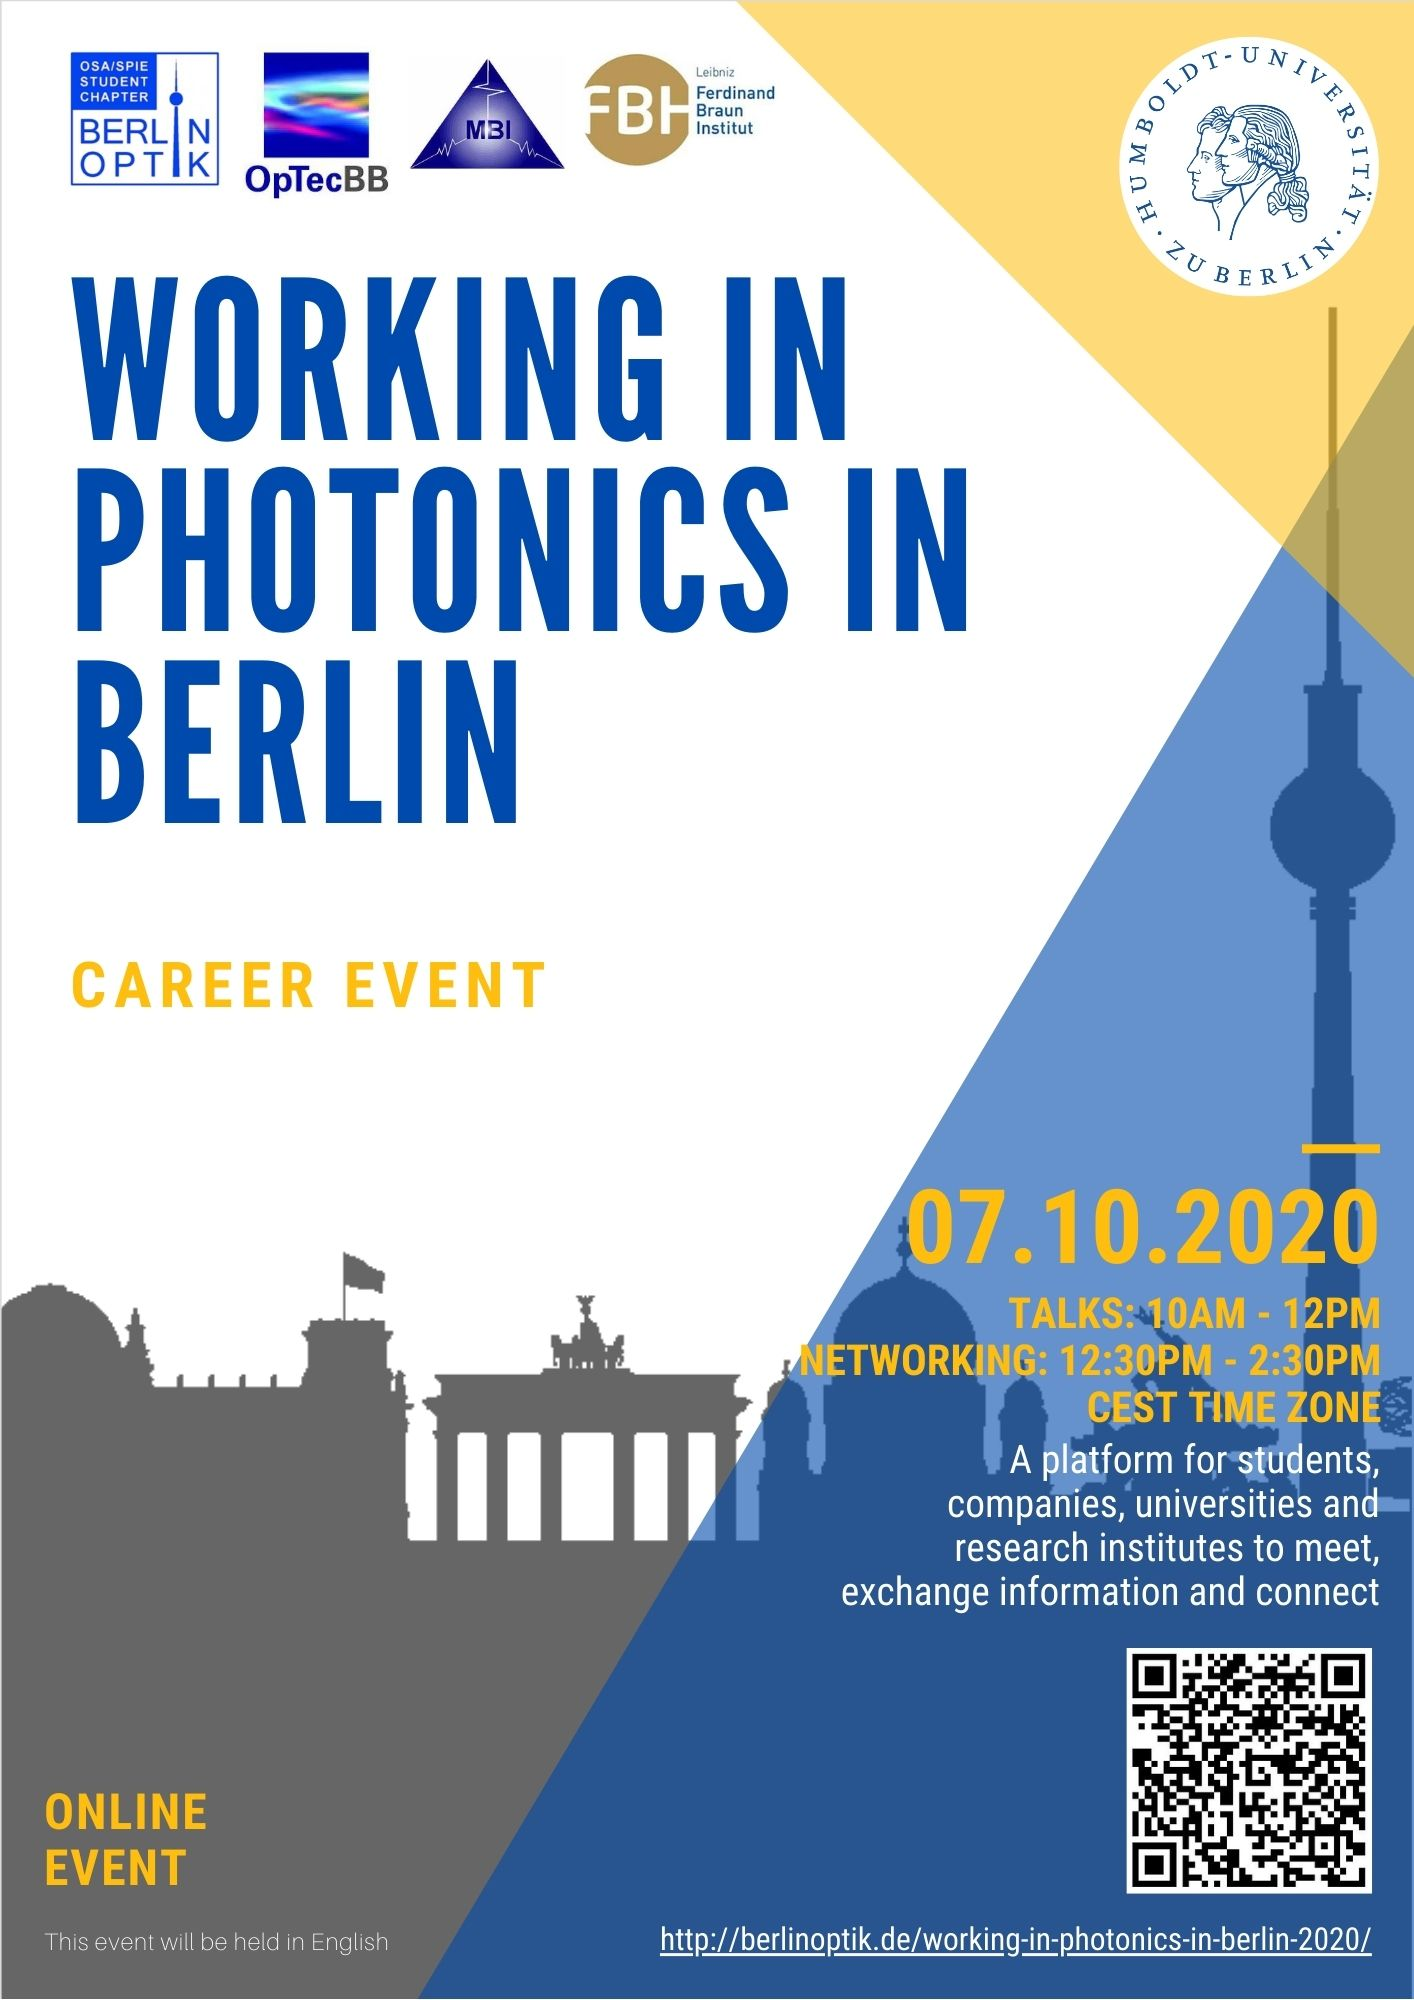 WPB2020 - Working in Photonics in Berlin